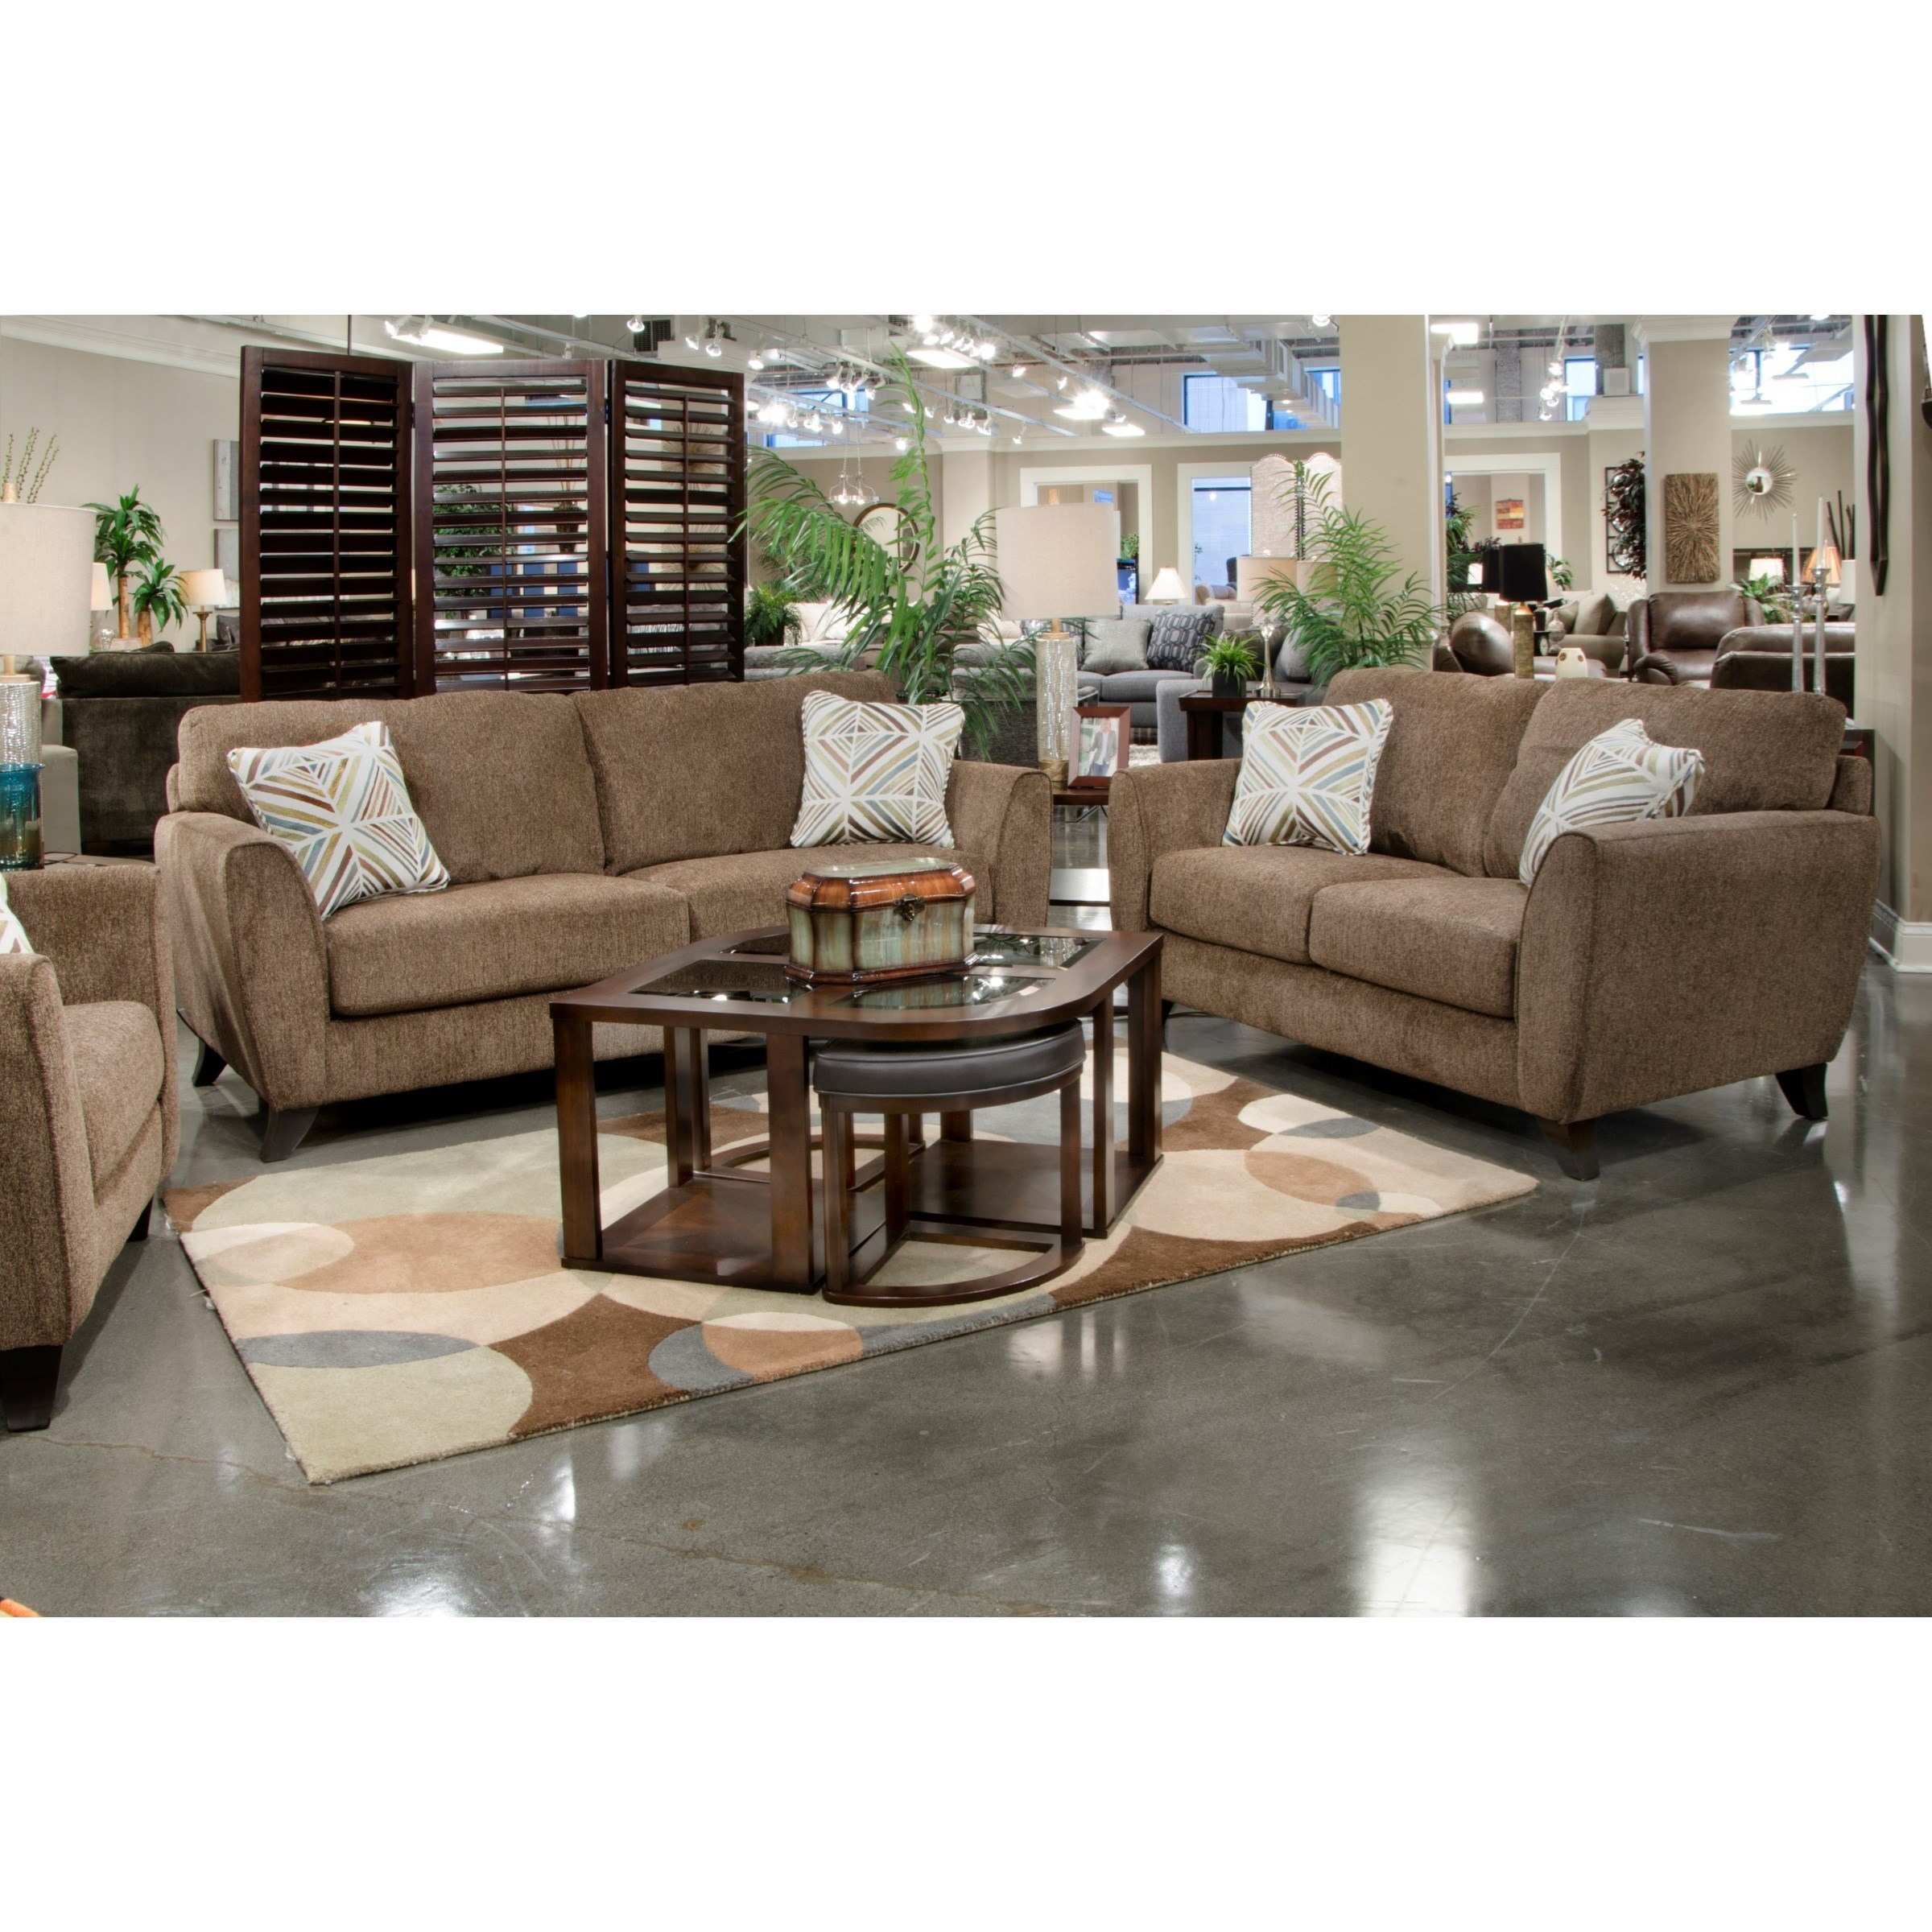 Alyssa Living Room Group by Jackson Furniture at Northeast Factory Direct